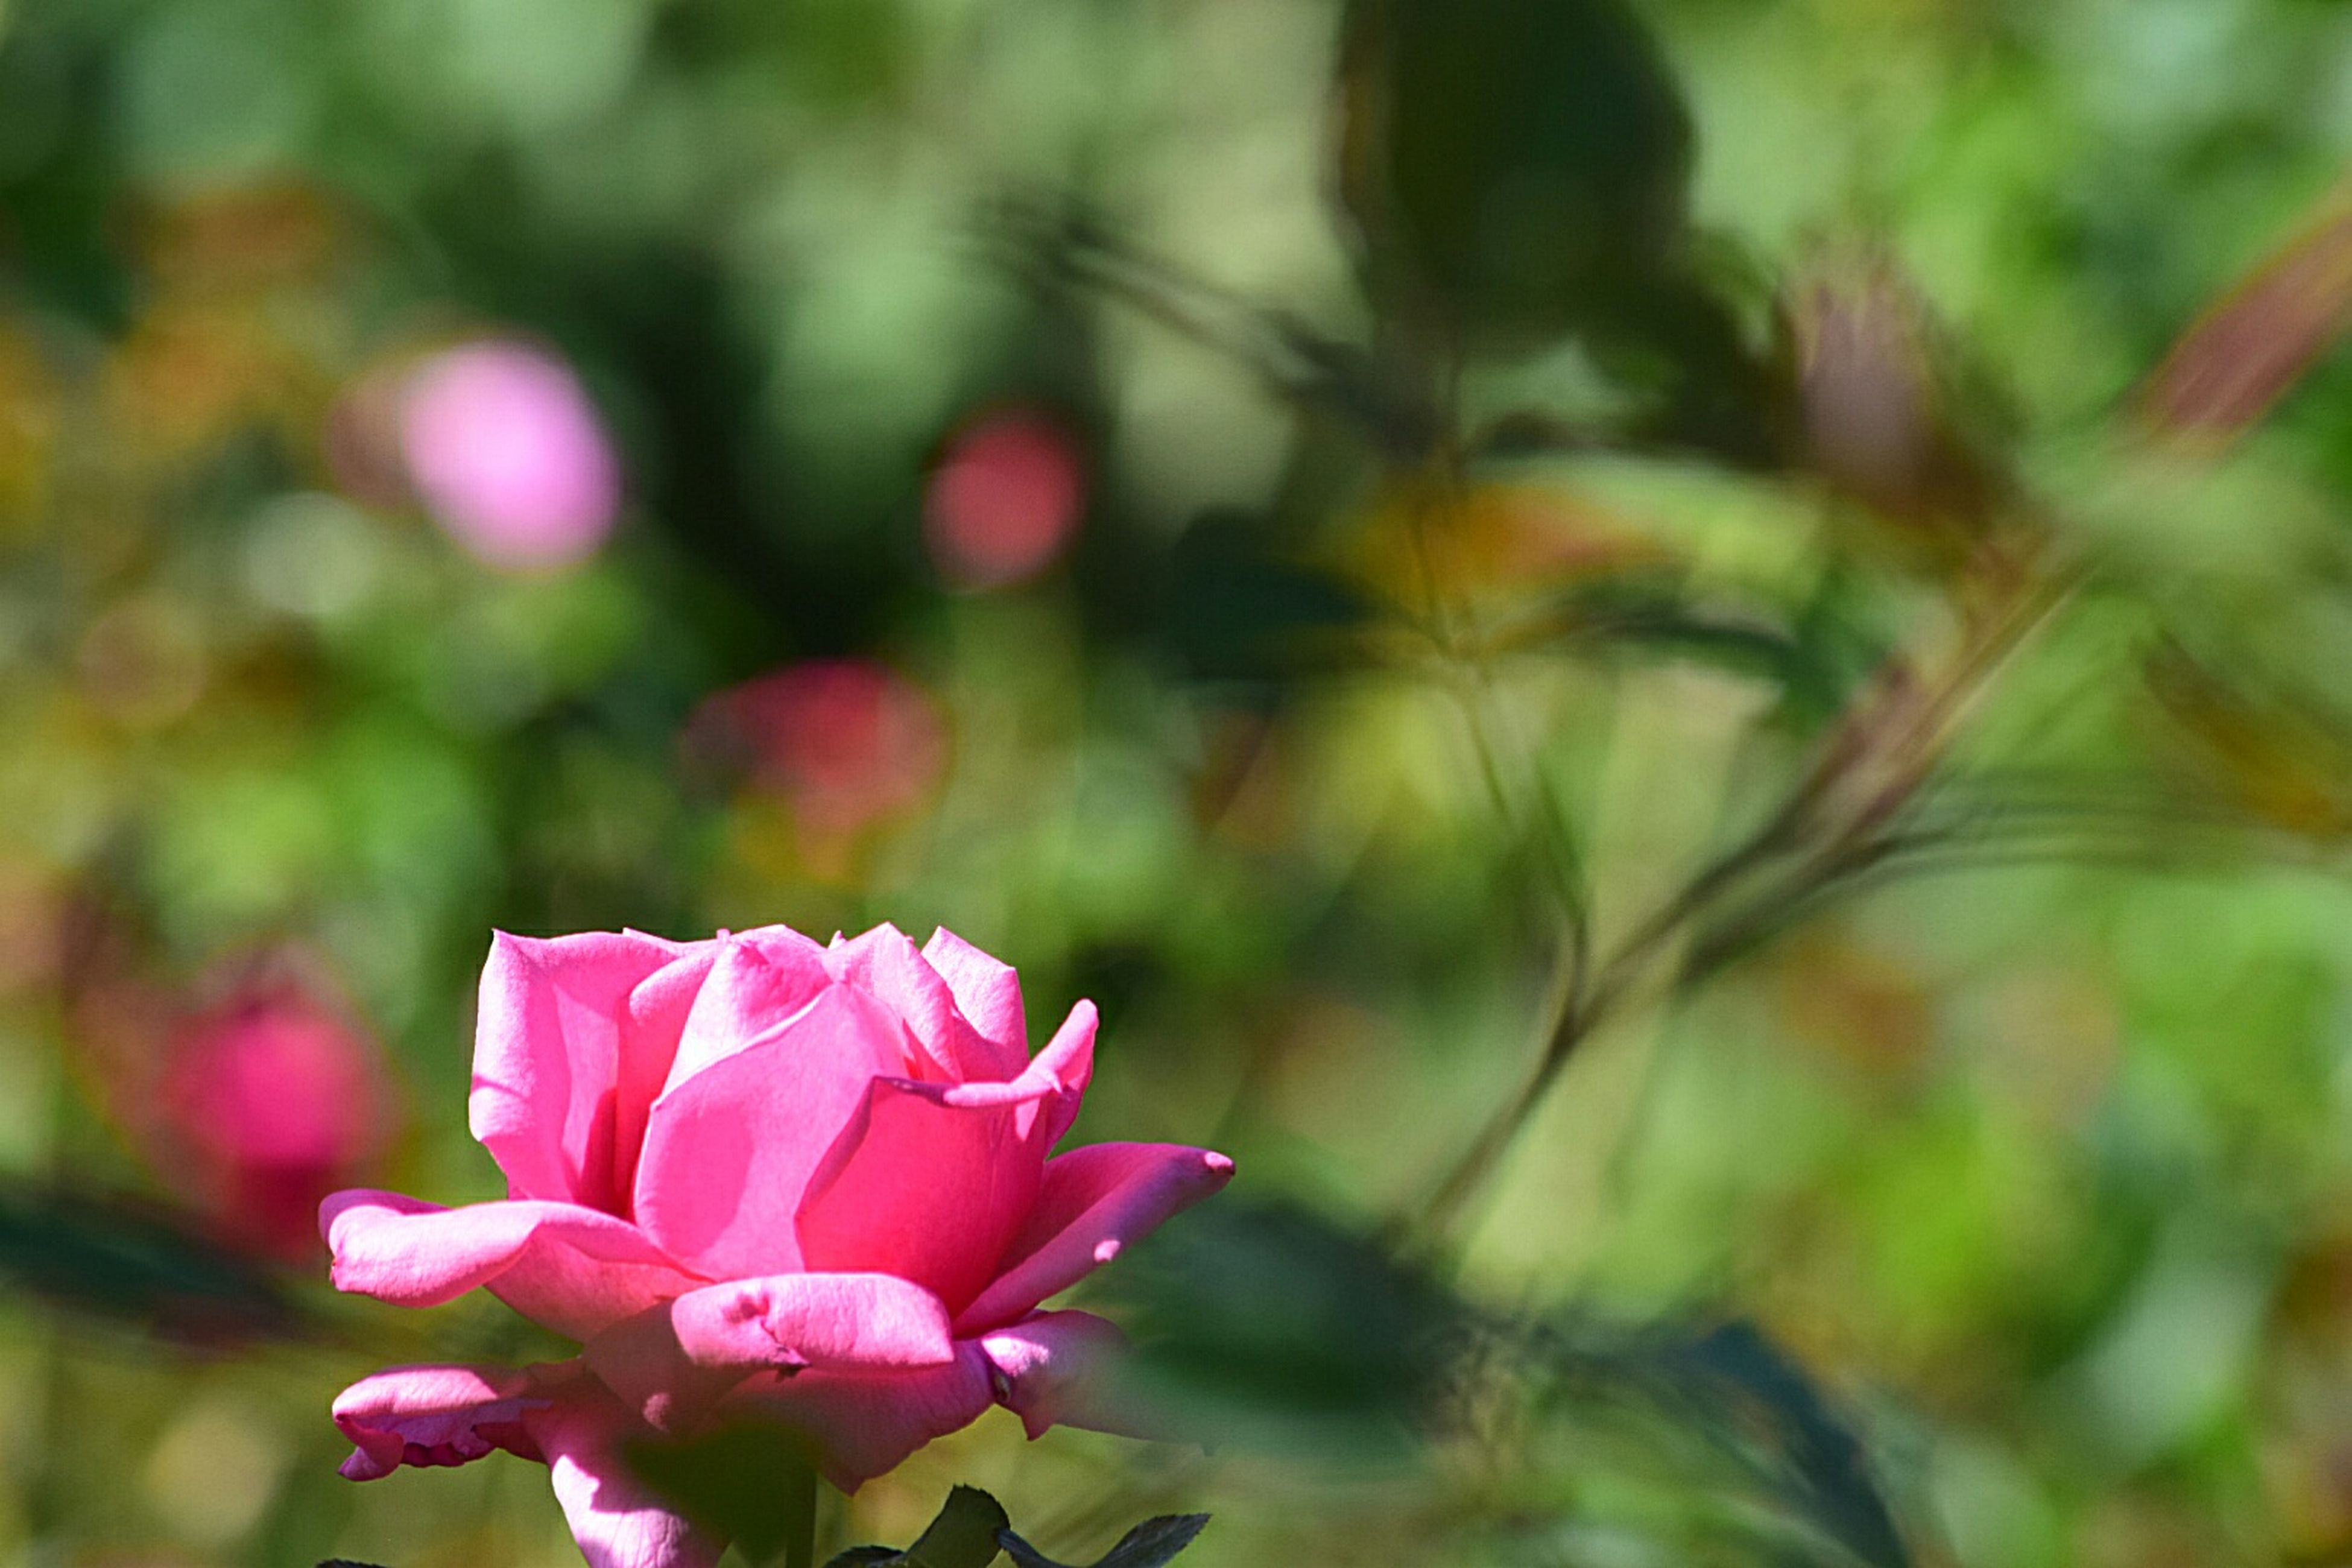 flower, petal, fragility, focus on foreground, freshness, flower head, growth, pink color, beauty in nature, close-up, blooming, plant, nature, in bloom, selective focus, stem, outdoors, park - man made space, day, blossom